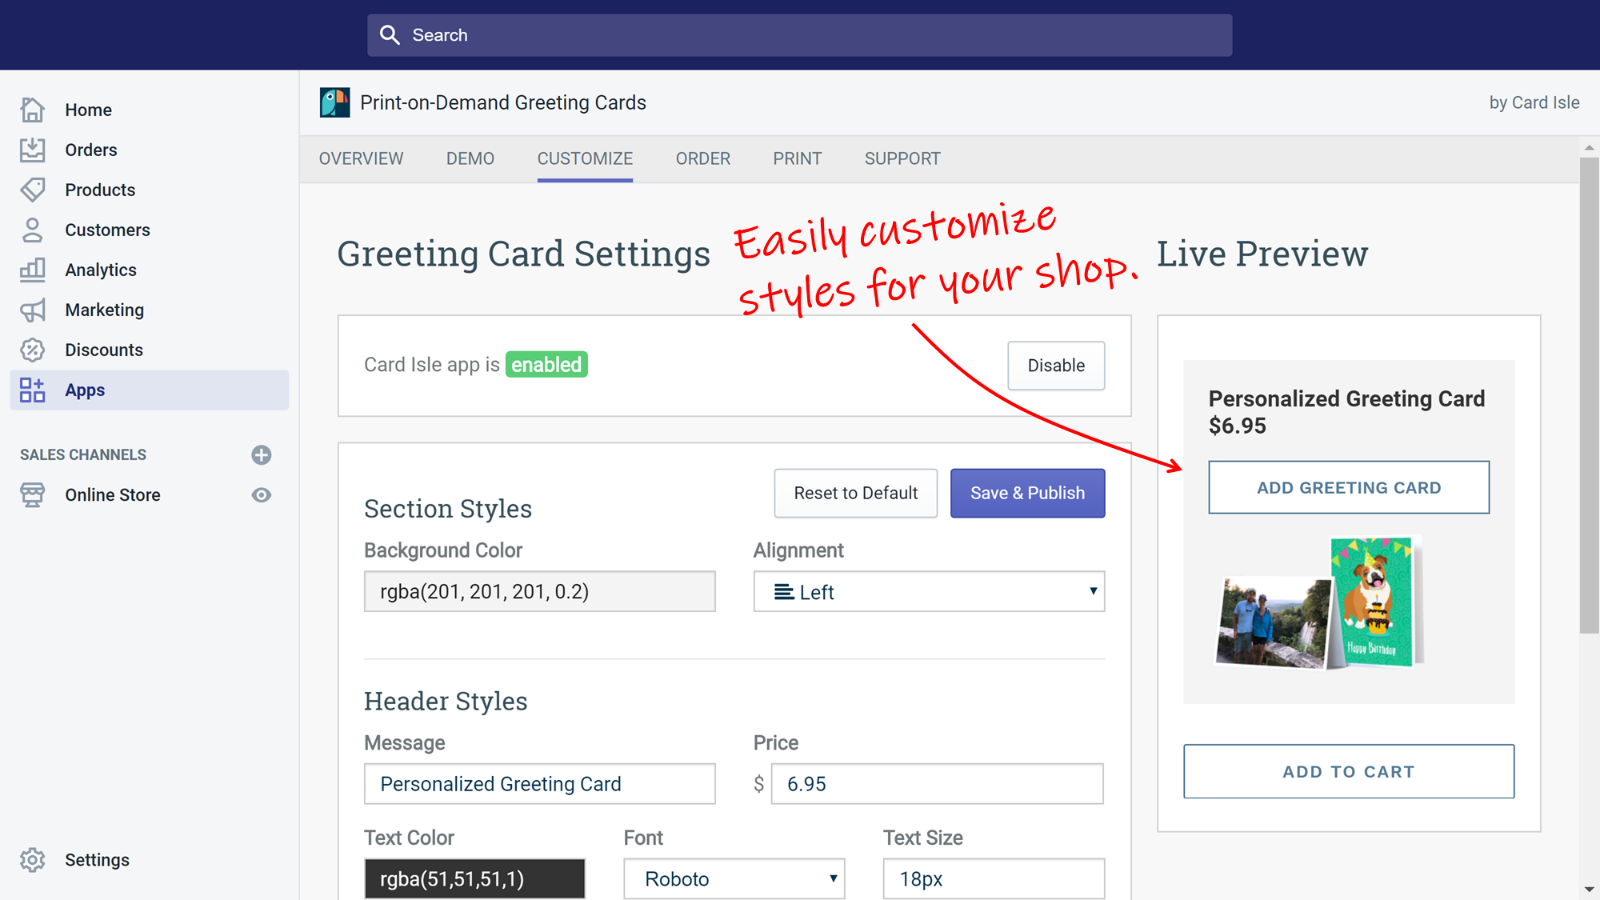 Easily customize the Card Isle integration to match your shop.